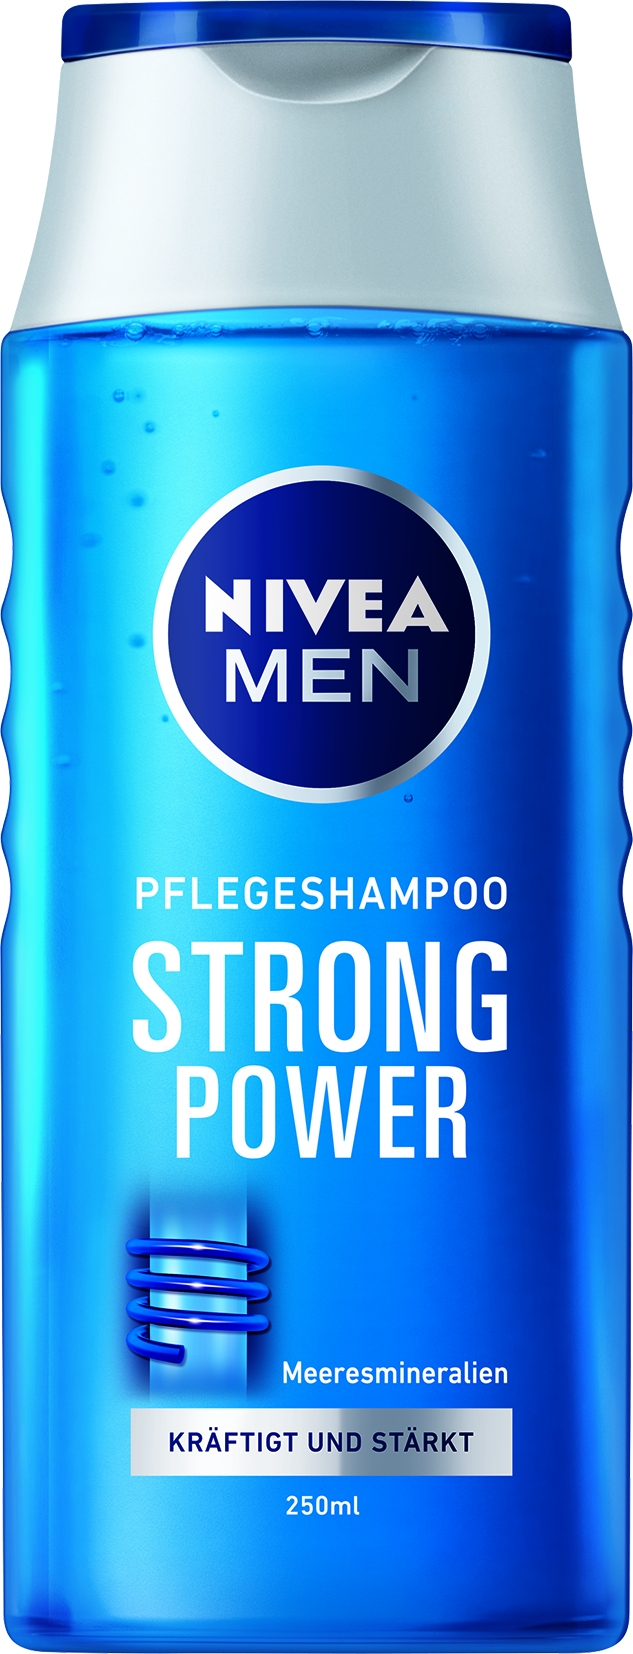 Shampoo for Men